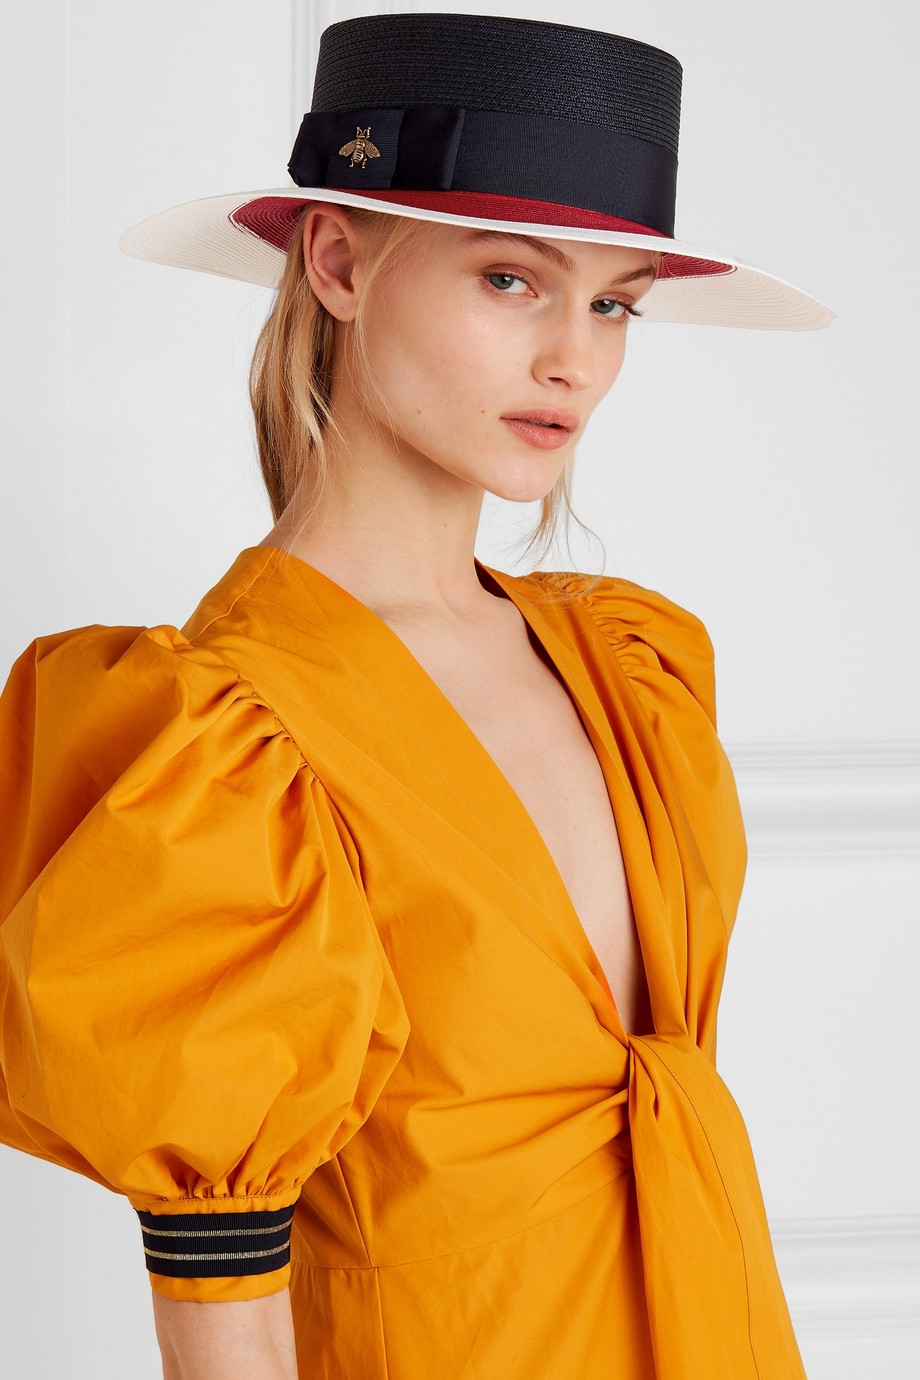 Gucci Embellished grosgrain-trimmed straw hat